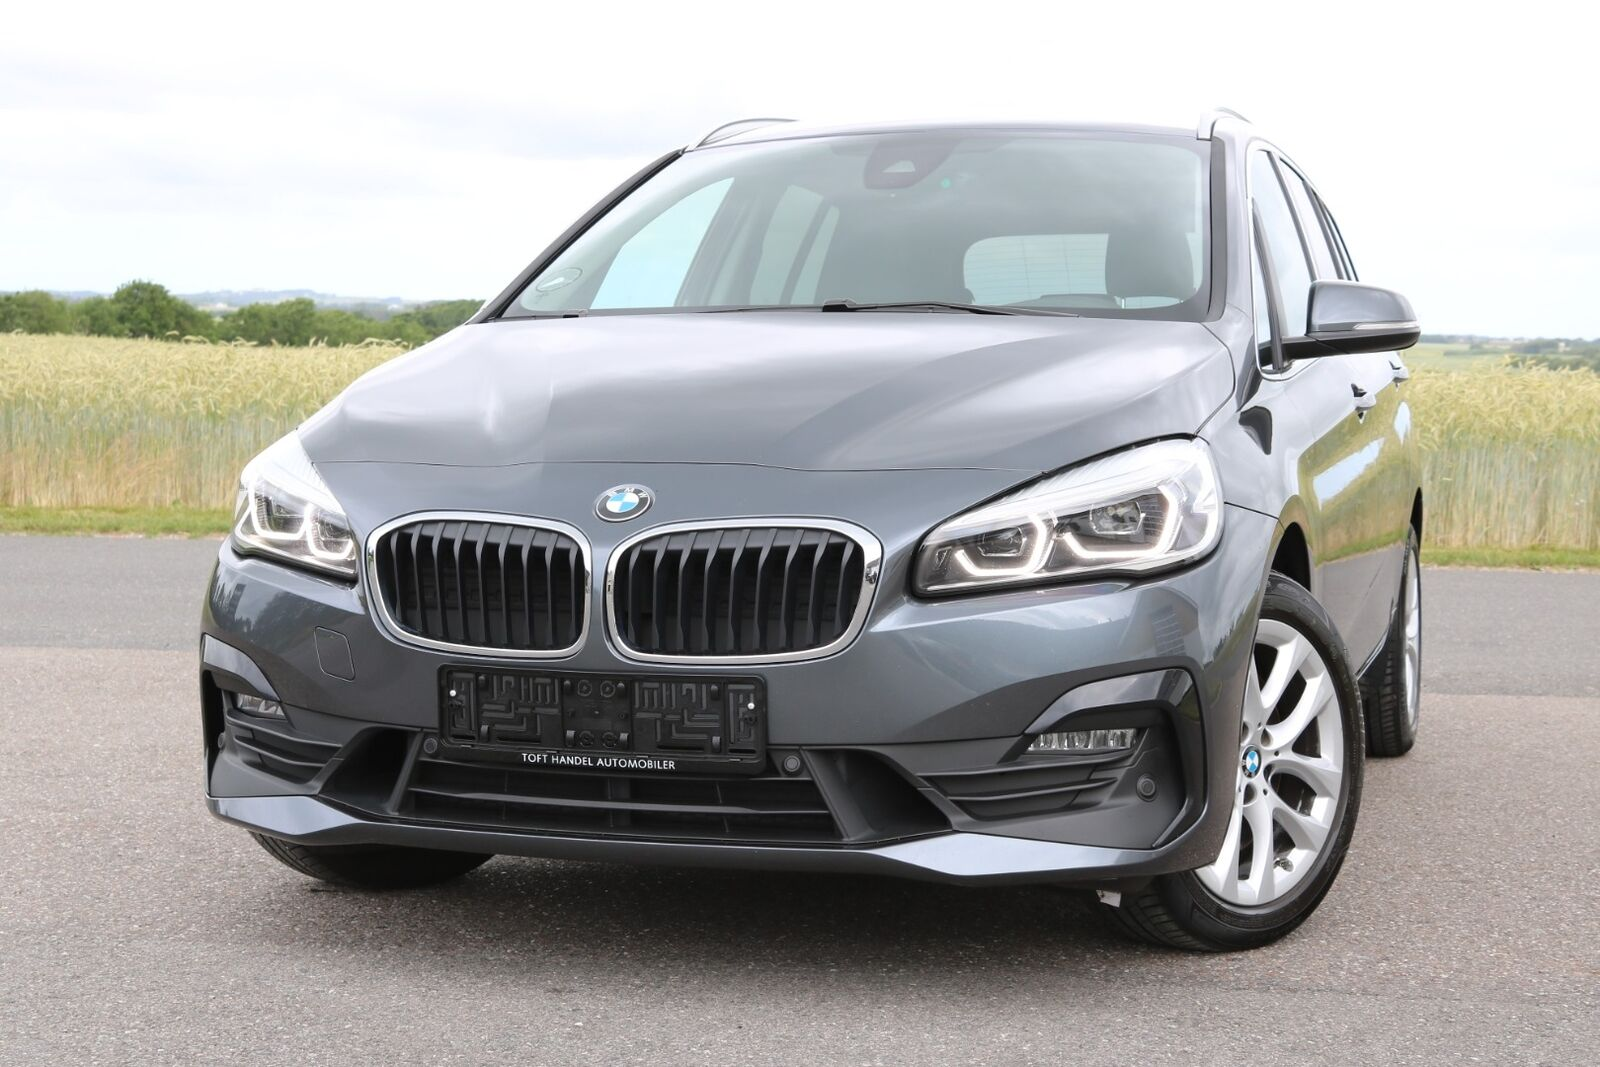 BMW 220d 2,0 Gran Tourer Advantage aut. 7p 5d - 349.900 kr.